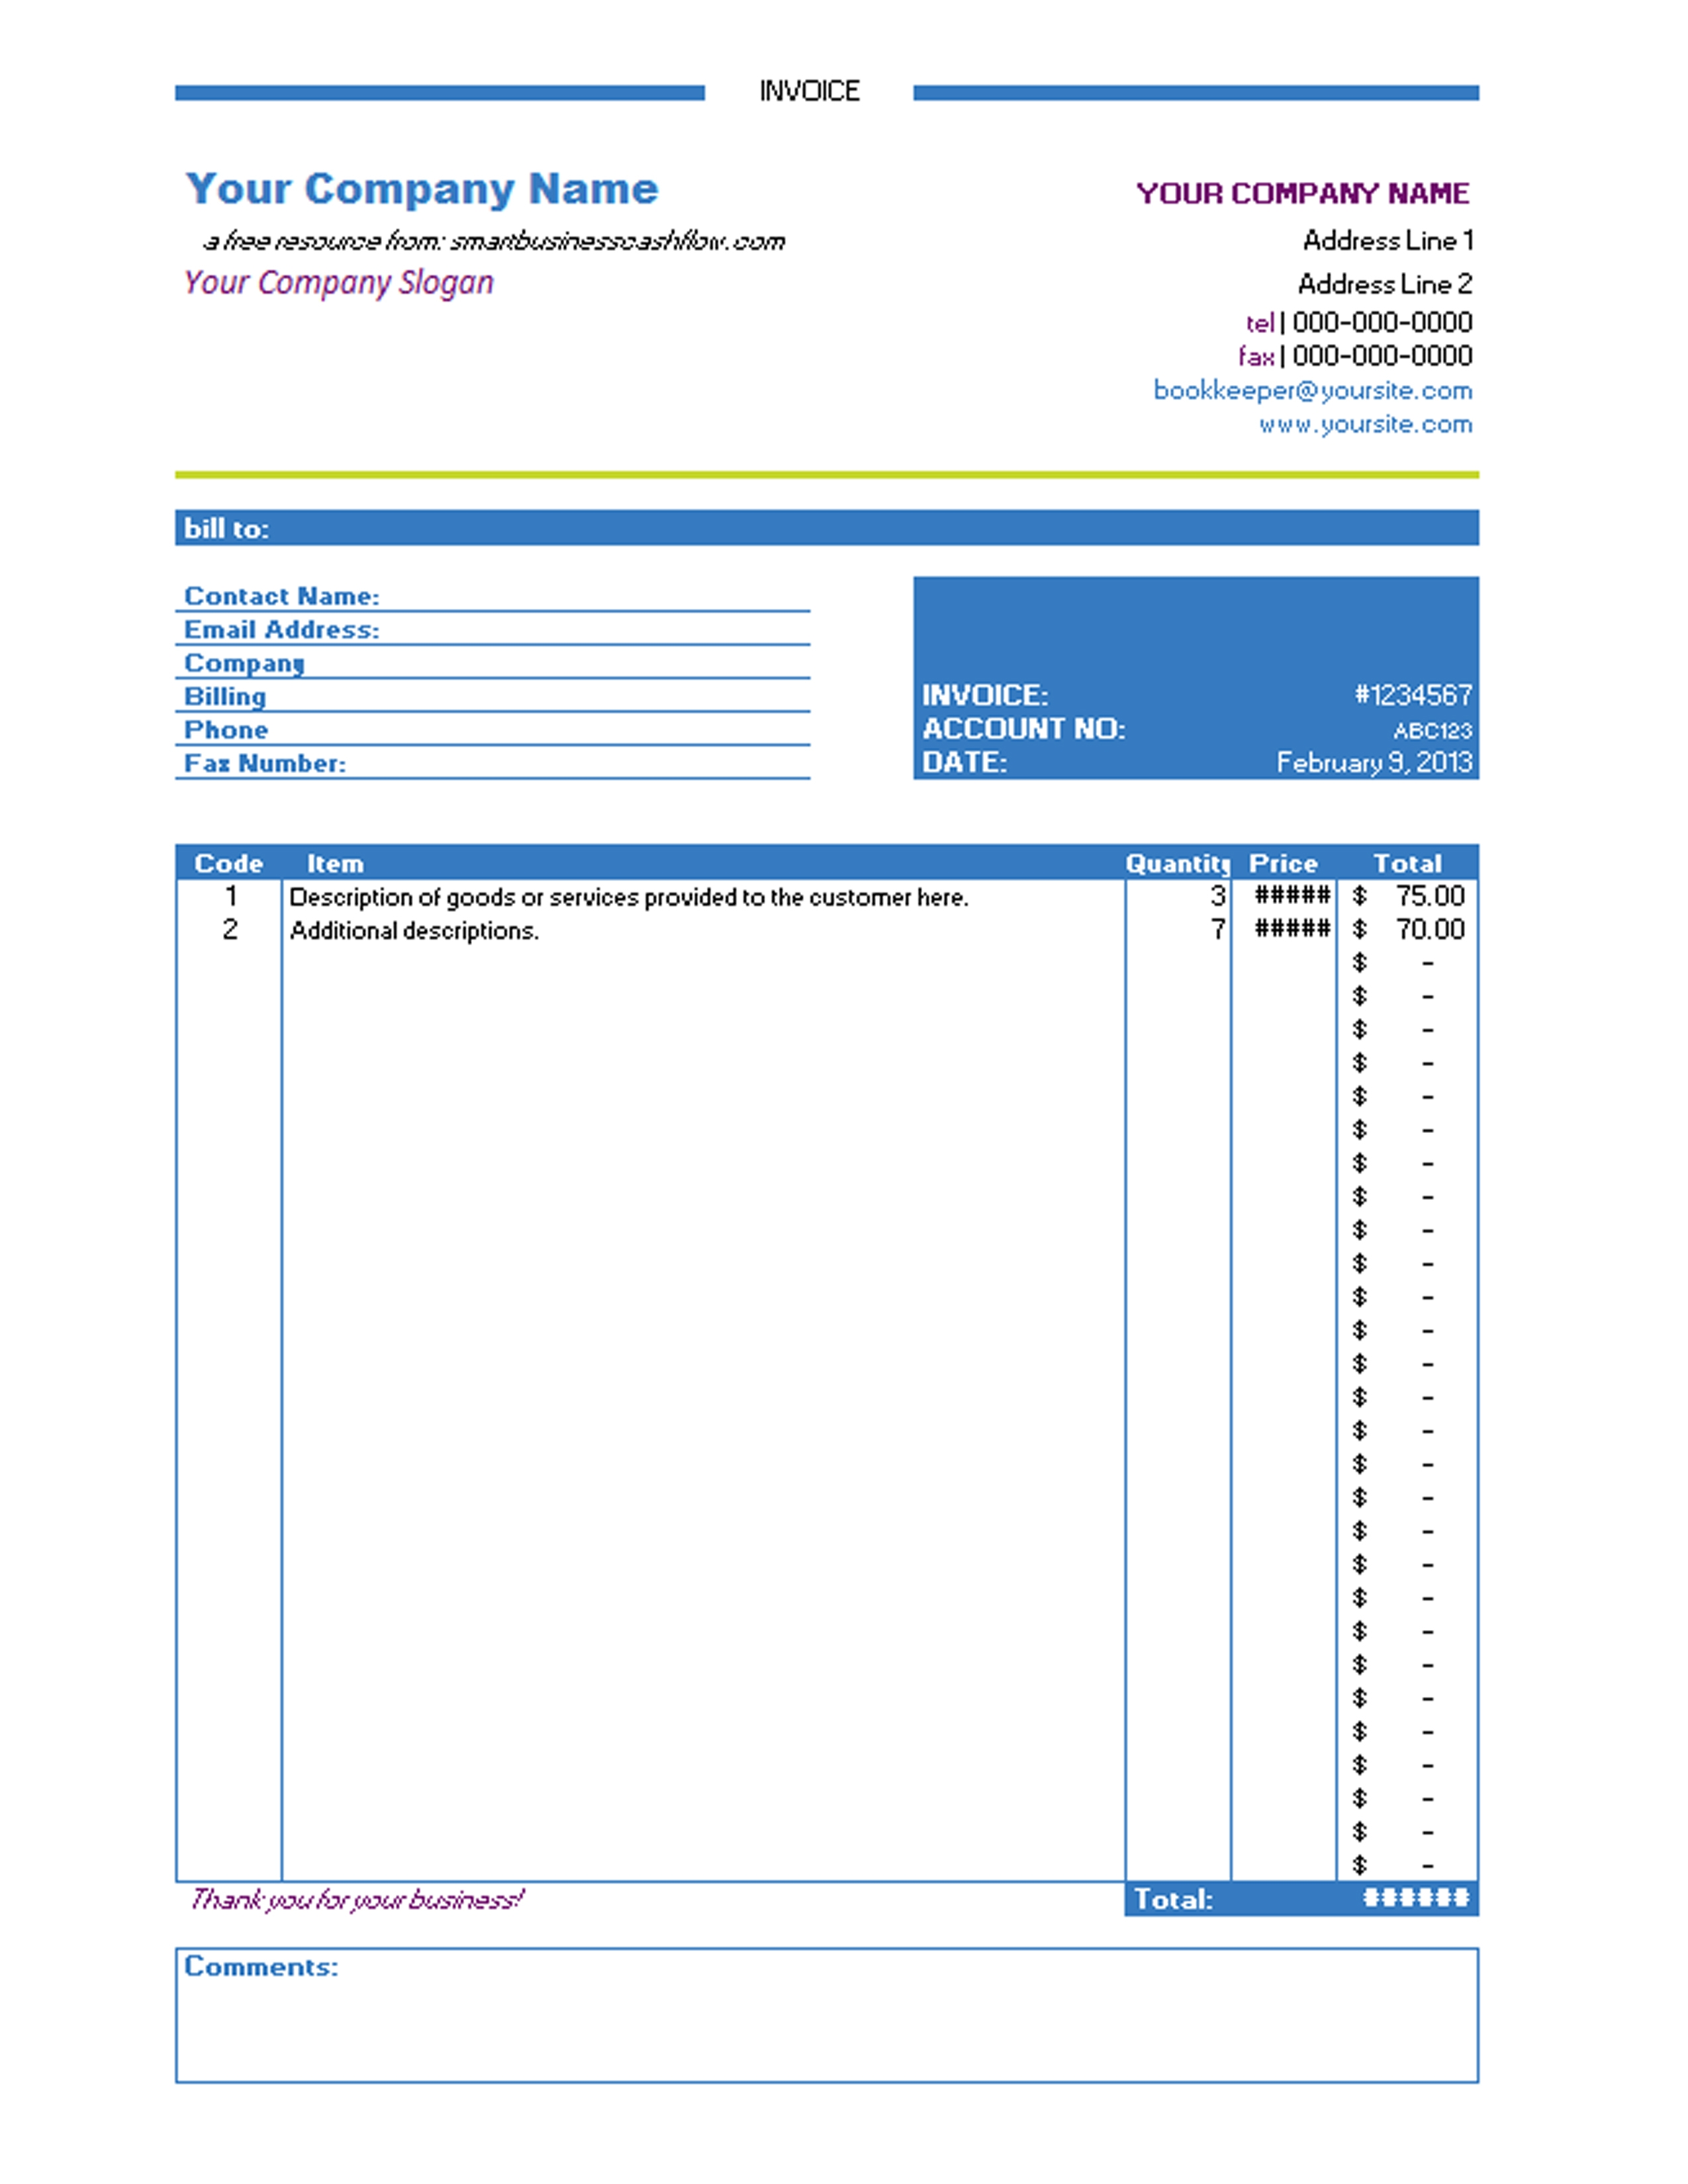 invoice template excel invoice sample template sales invoice sample invoices excel